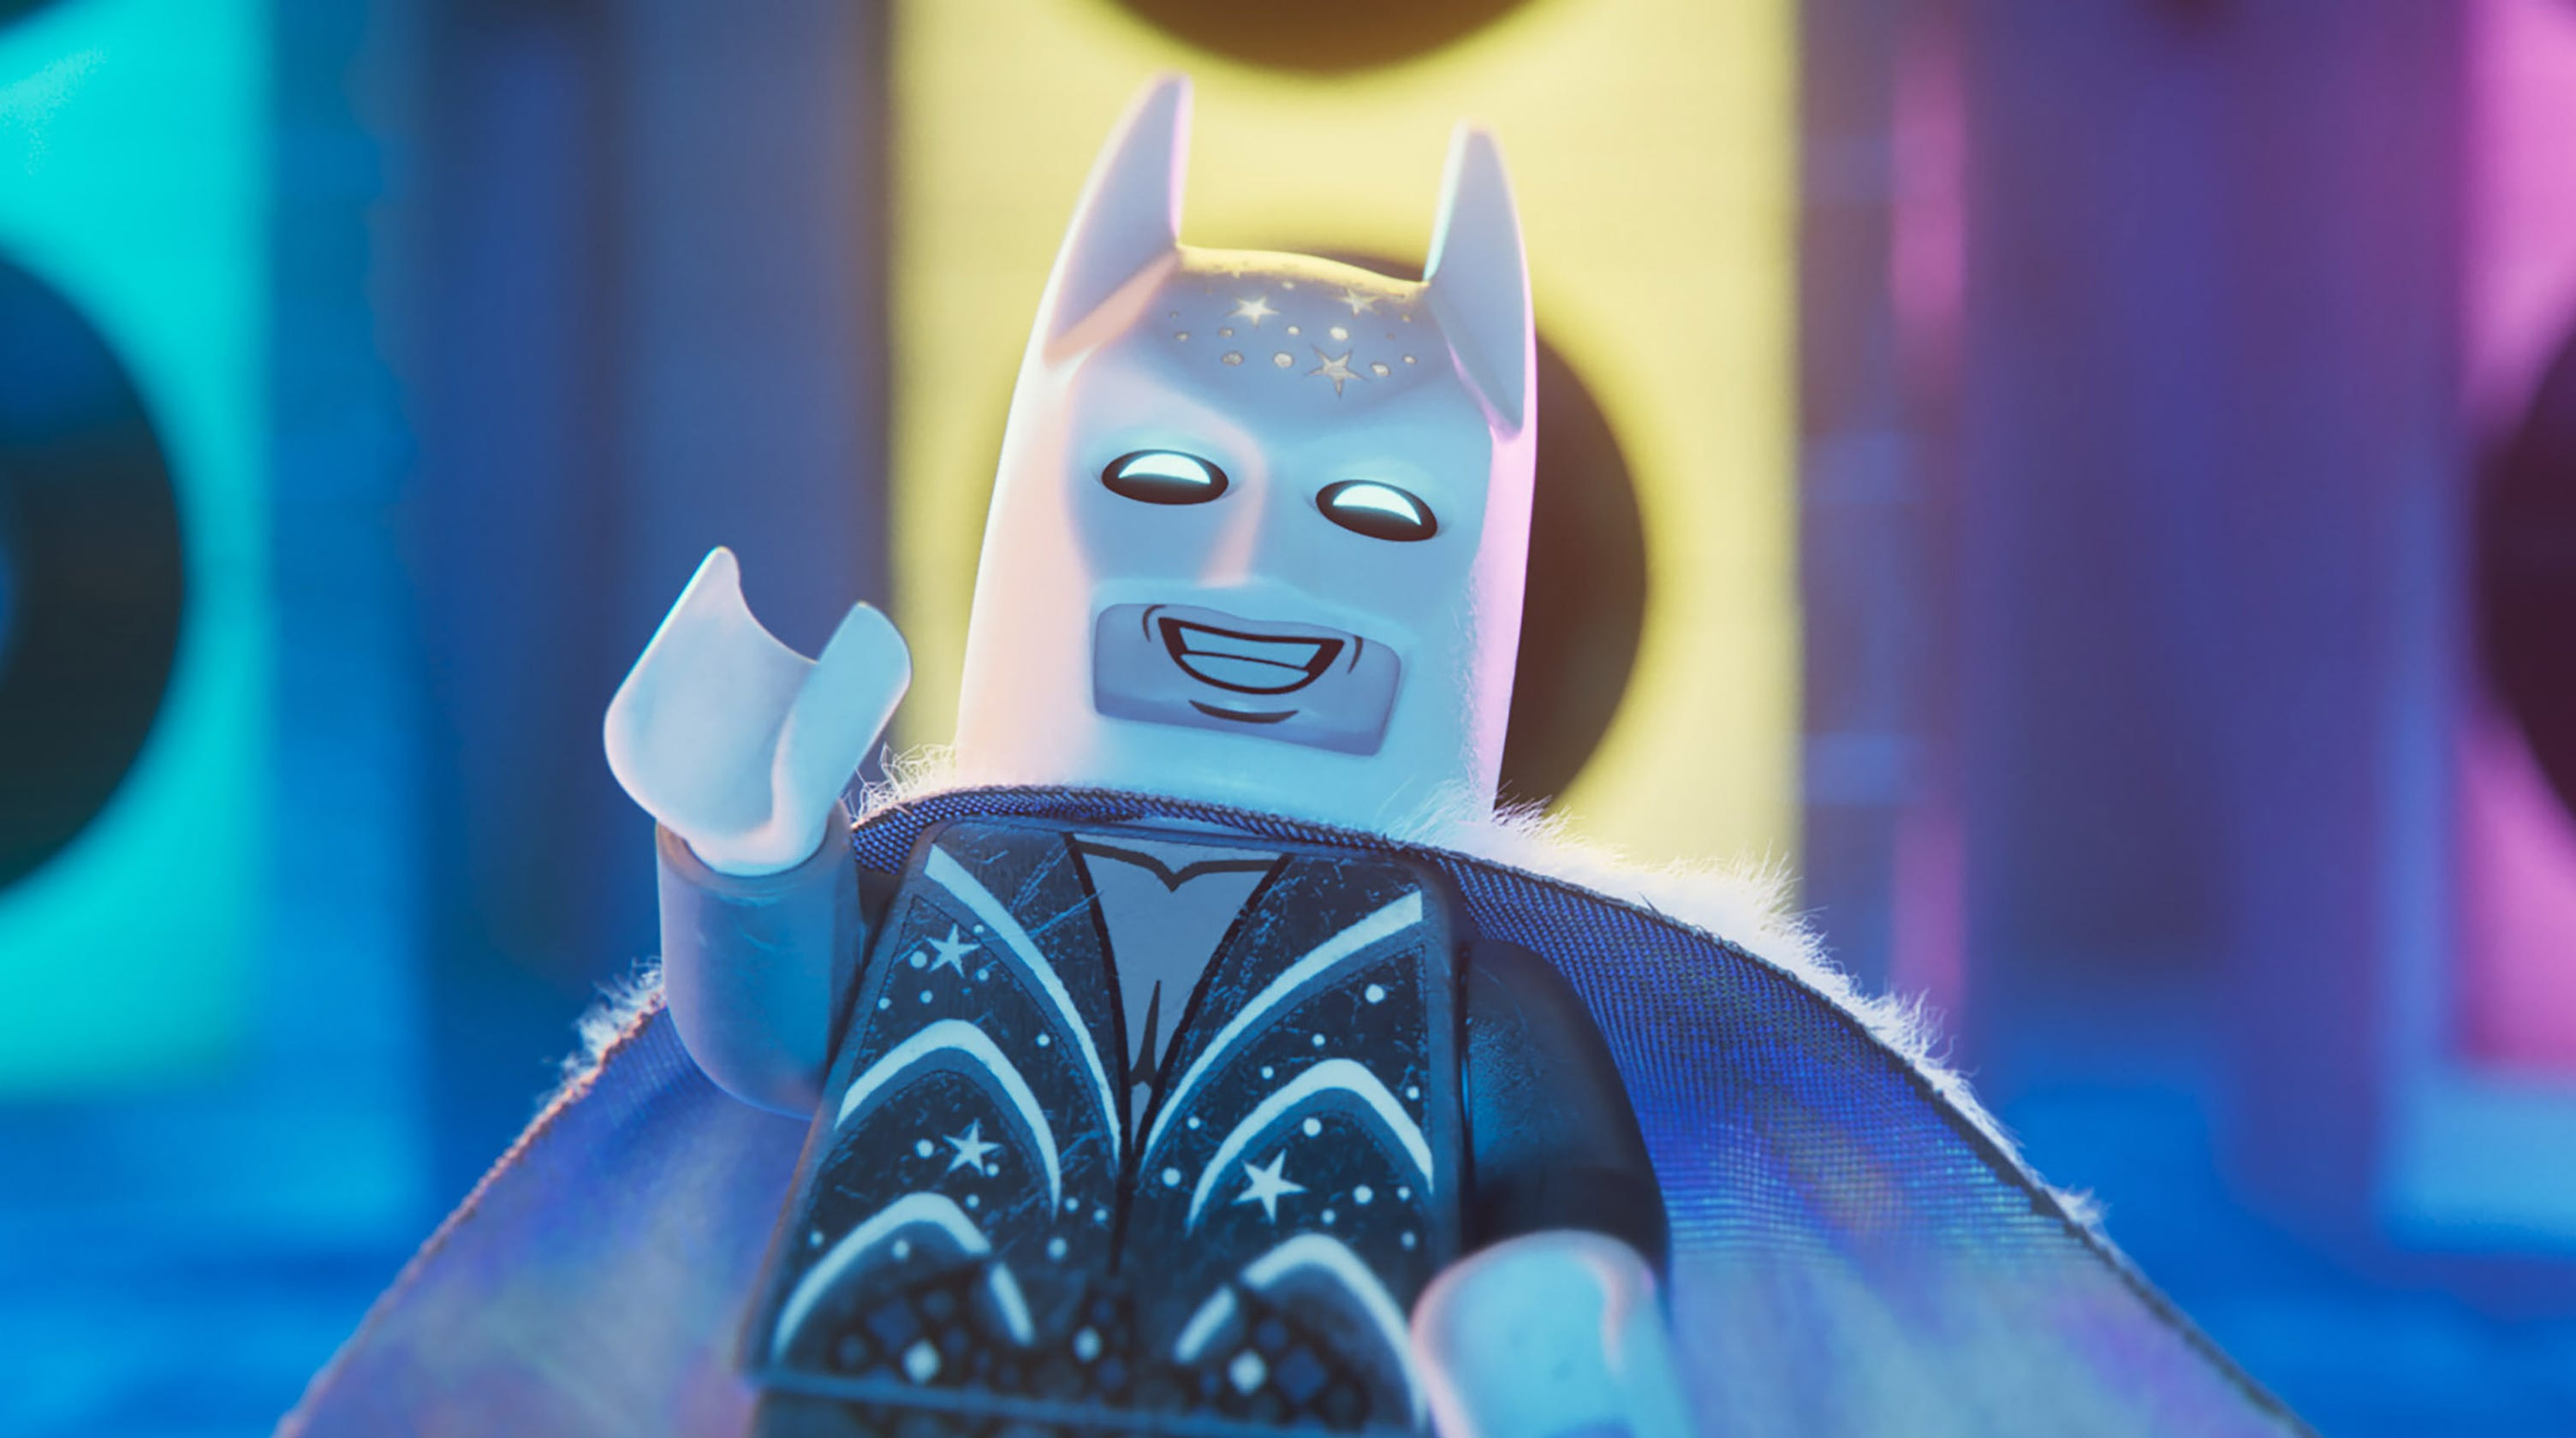 The Lego Movie 2': Every 'Lego' movie, ranked worst to best